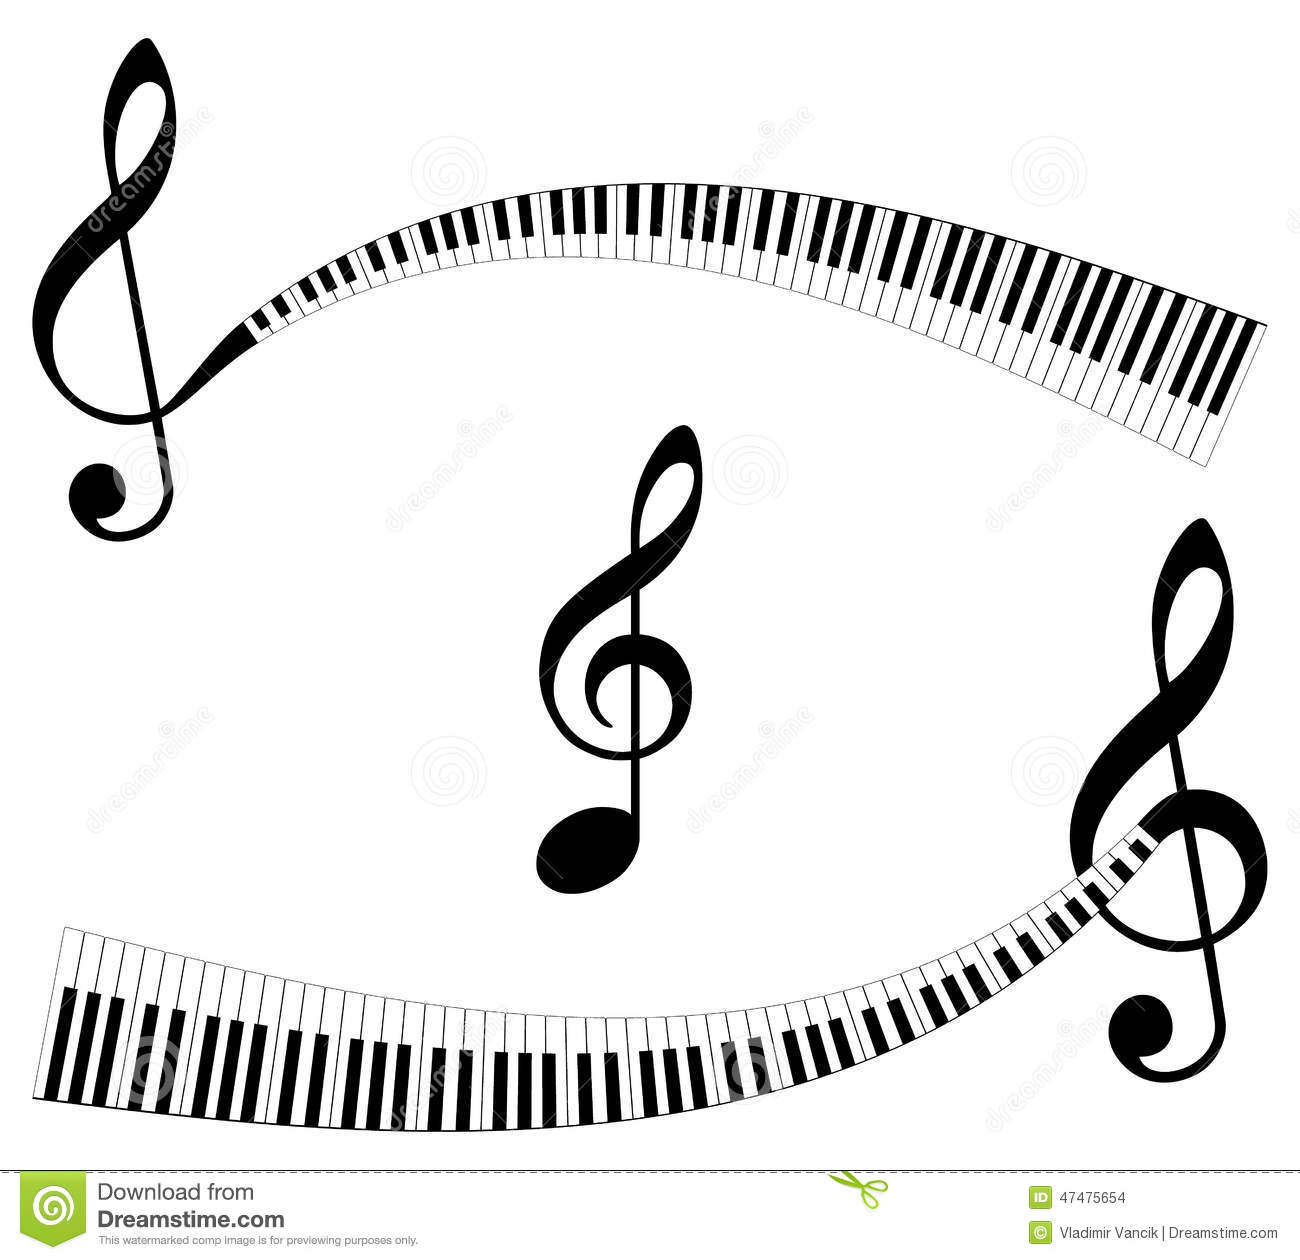 Treble clef in abstract piano keyboard symbol of music stock abstract music symbols stock images buycottarizona